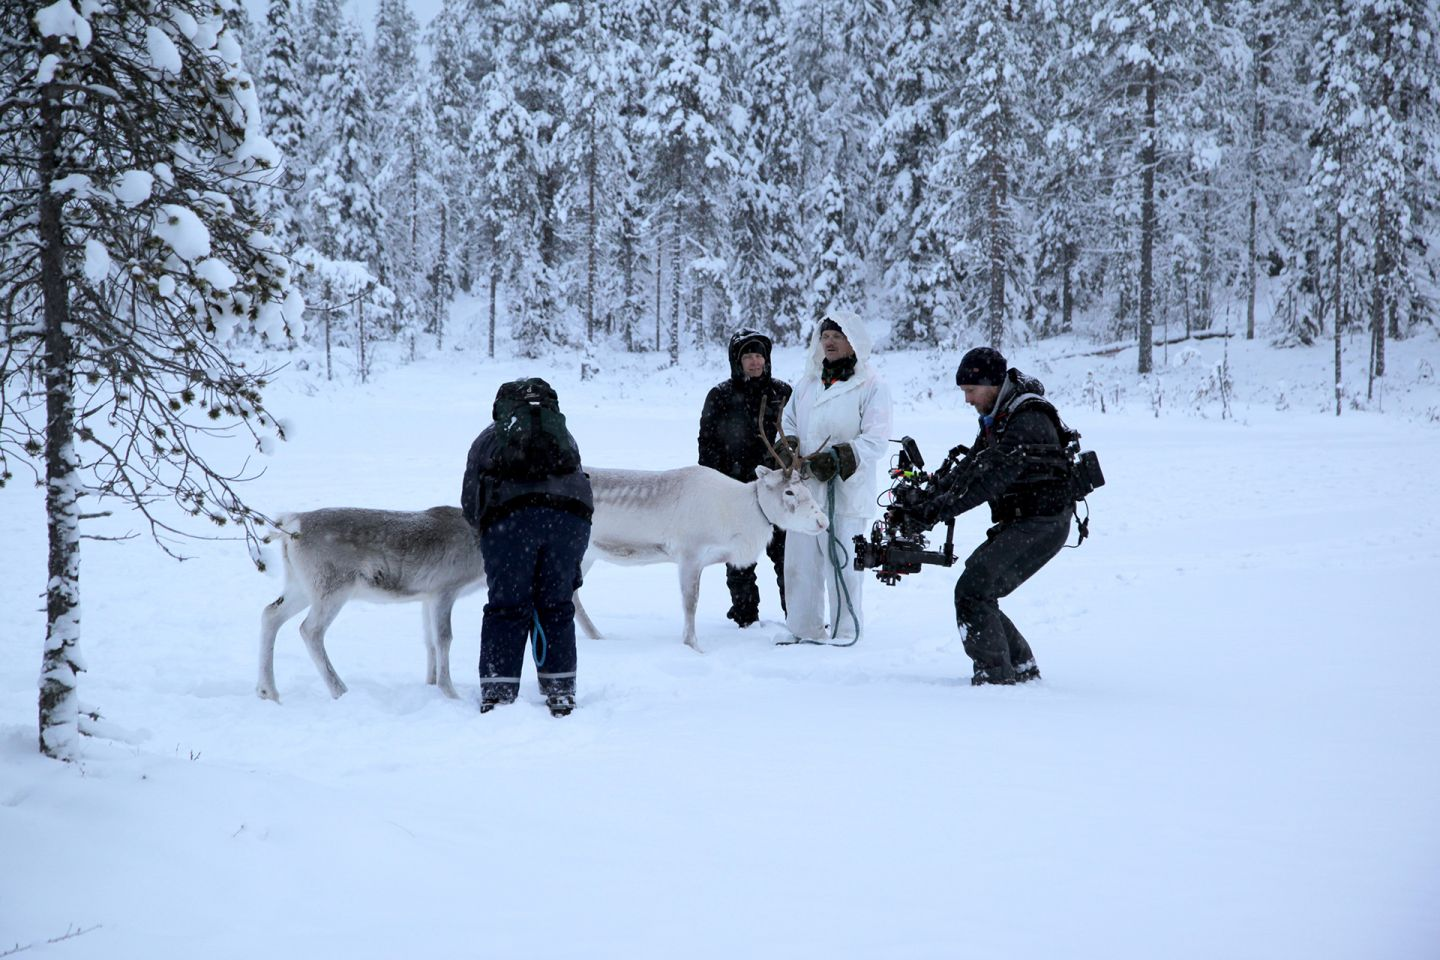 Crew filming reindeer, during production of A Reindeer's Journey in Lapland